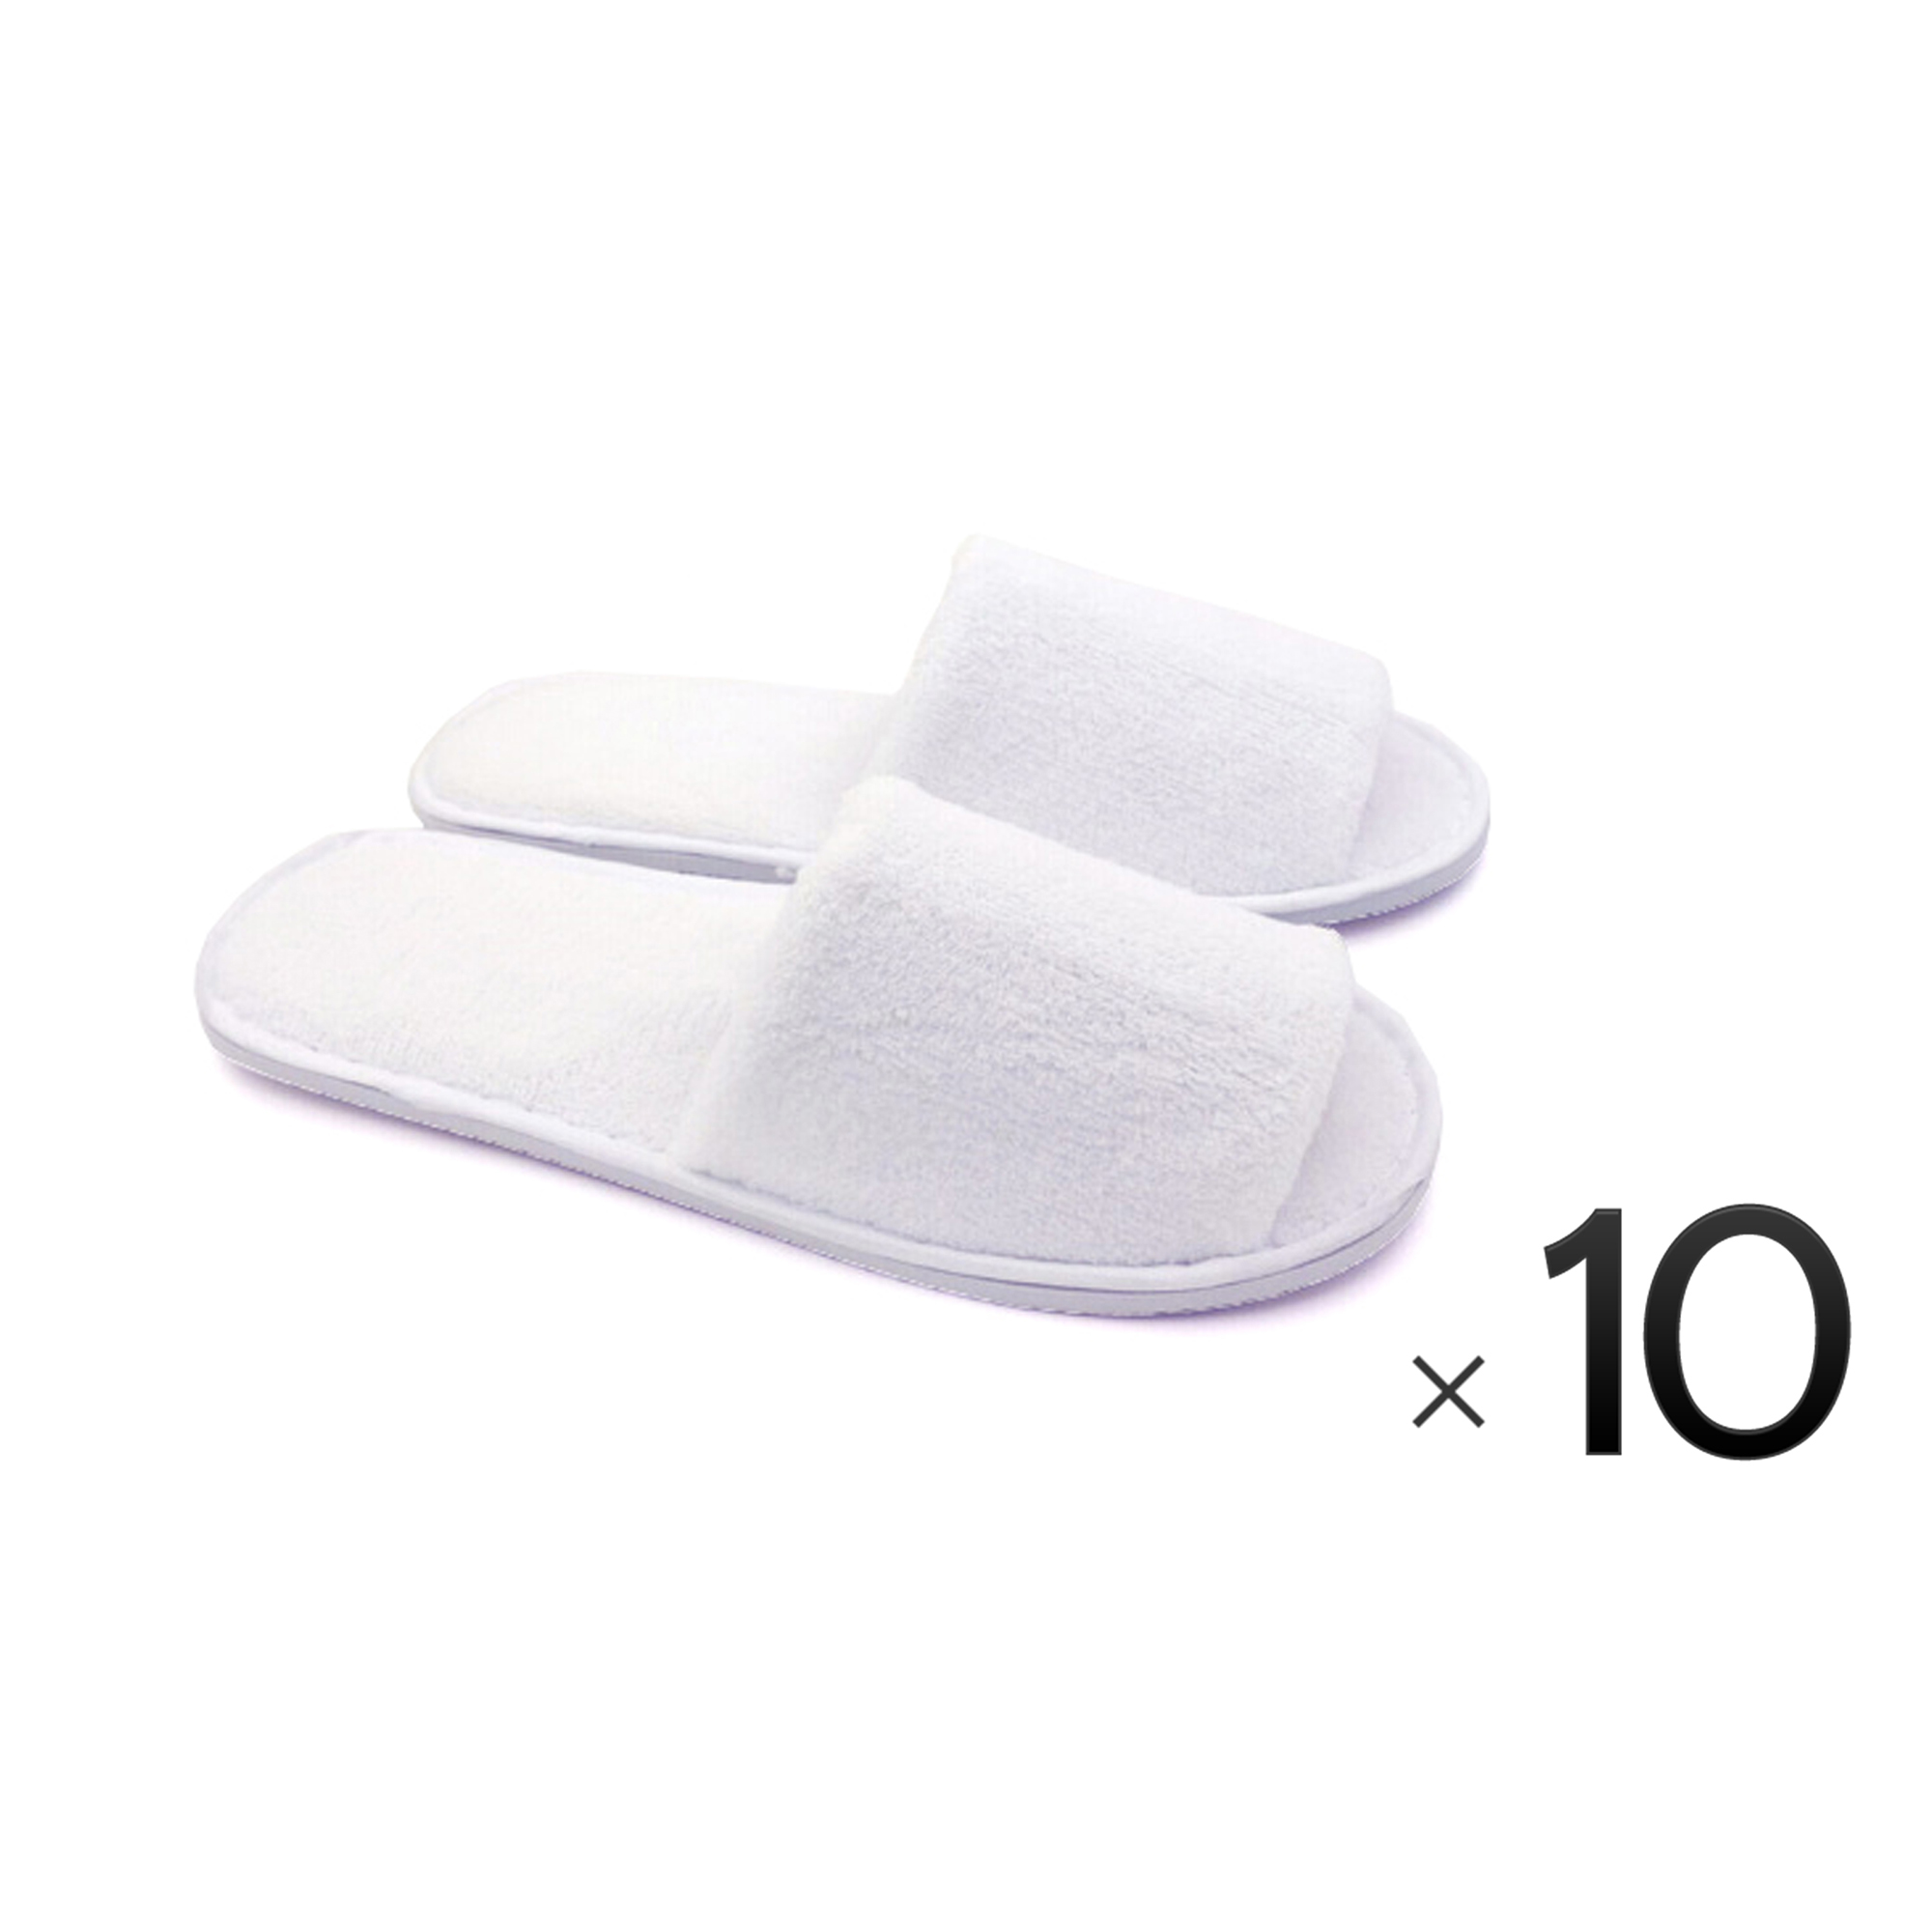 ca4180692 Project E Beauty - One Size Disposable Closed Toe Adult Cotton Slippers  Salon Spa Hotel Slippers for Women and Men 10 Pairs - Pink - Walmart.com